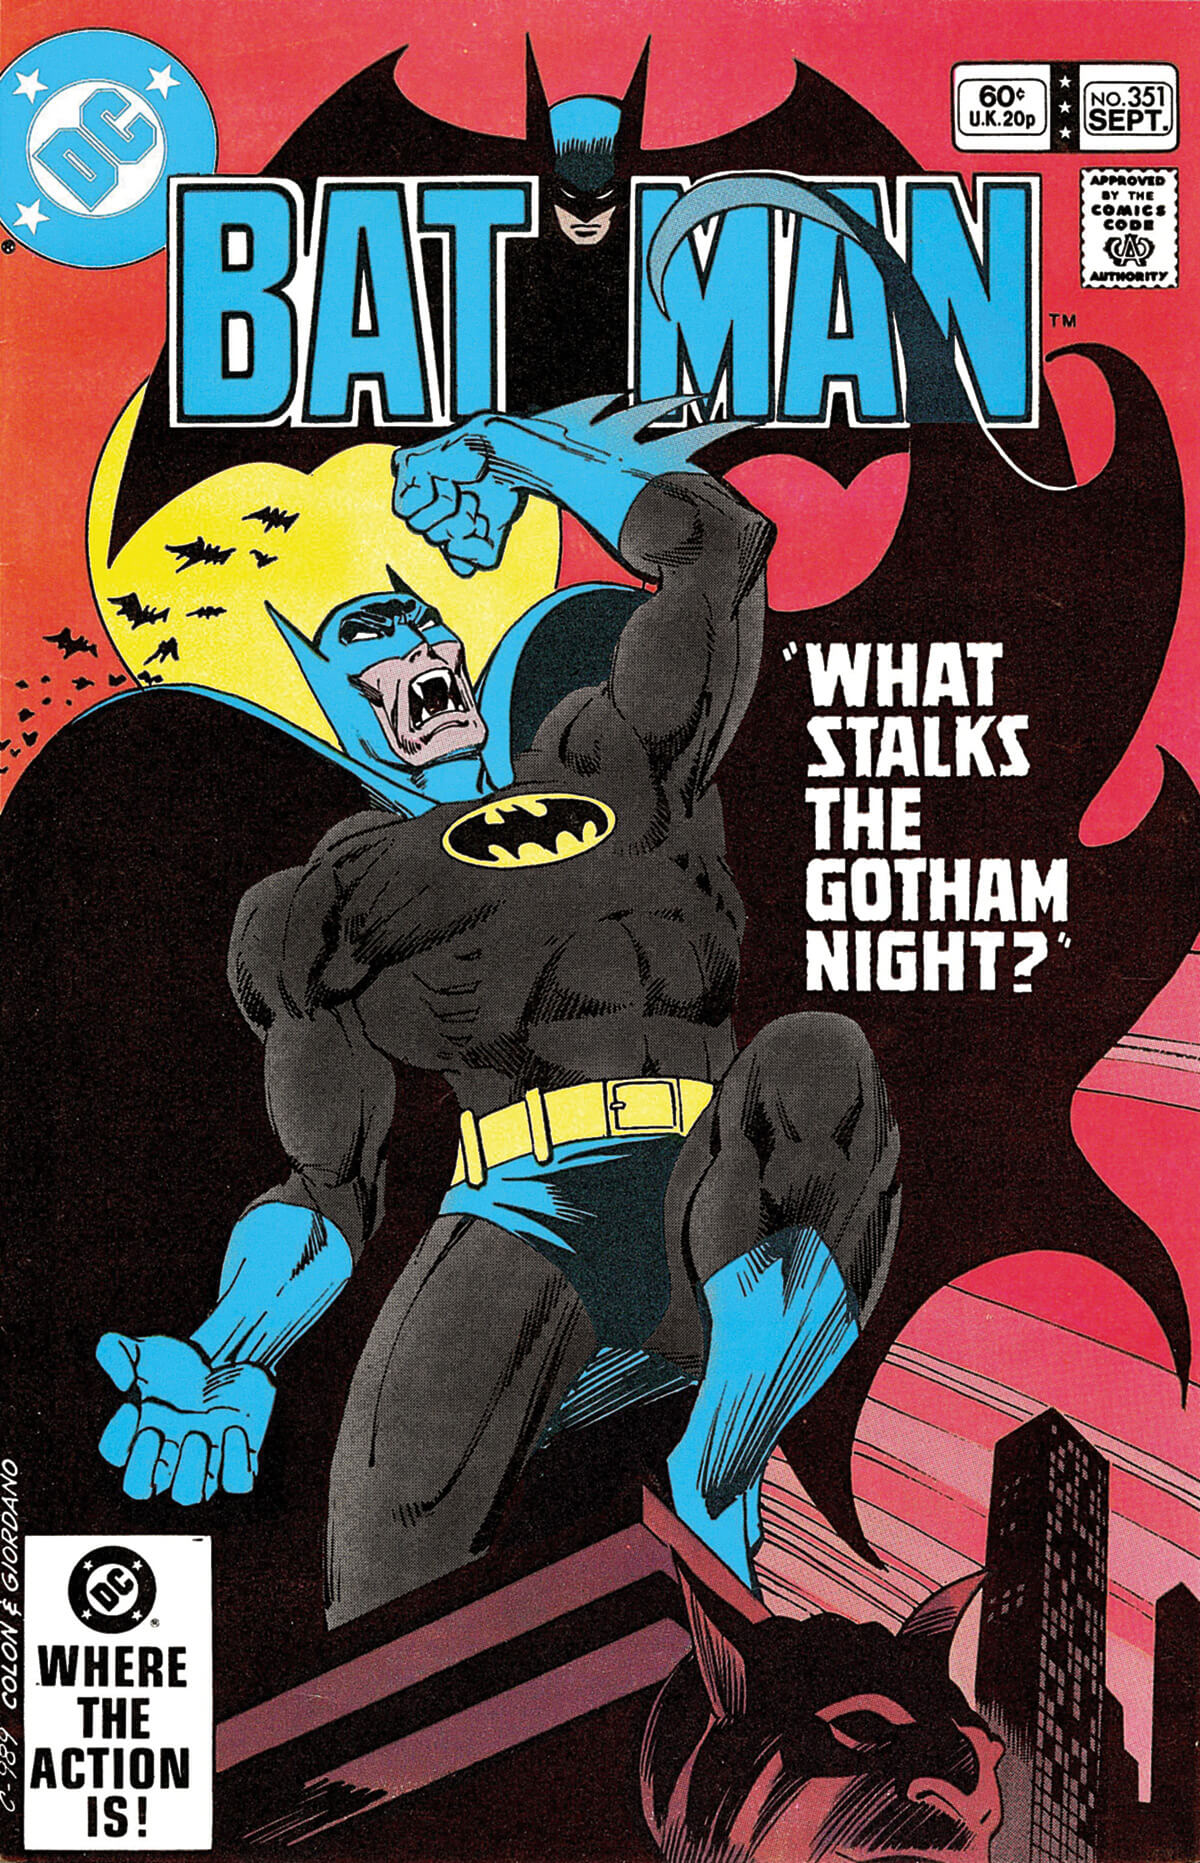 Batman 351 by Ernie Colon and Dick Giordano